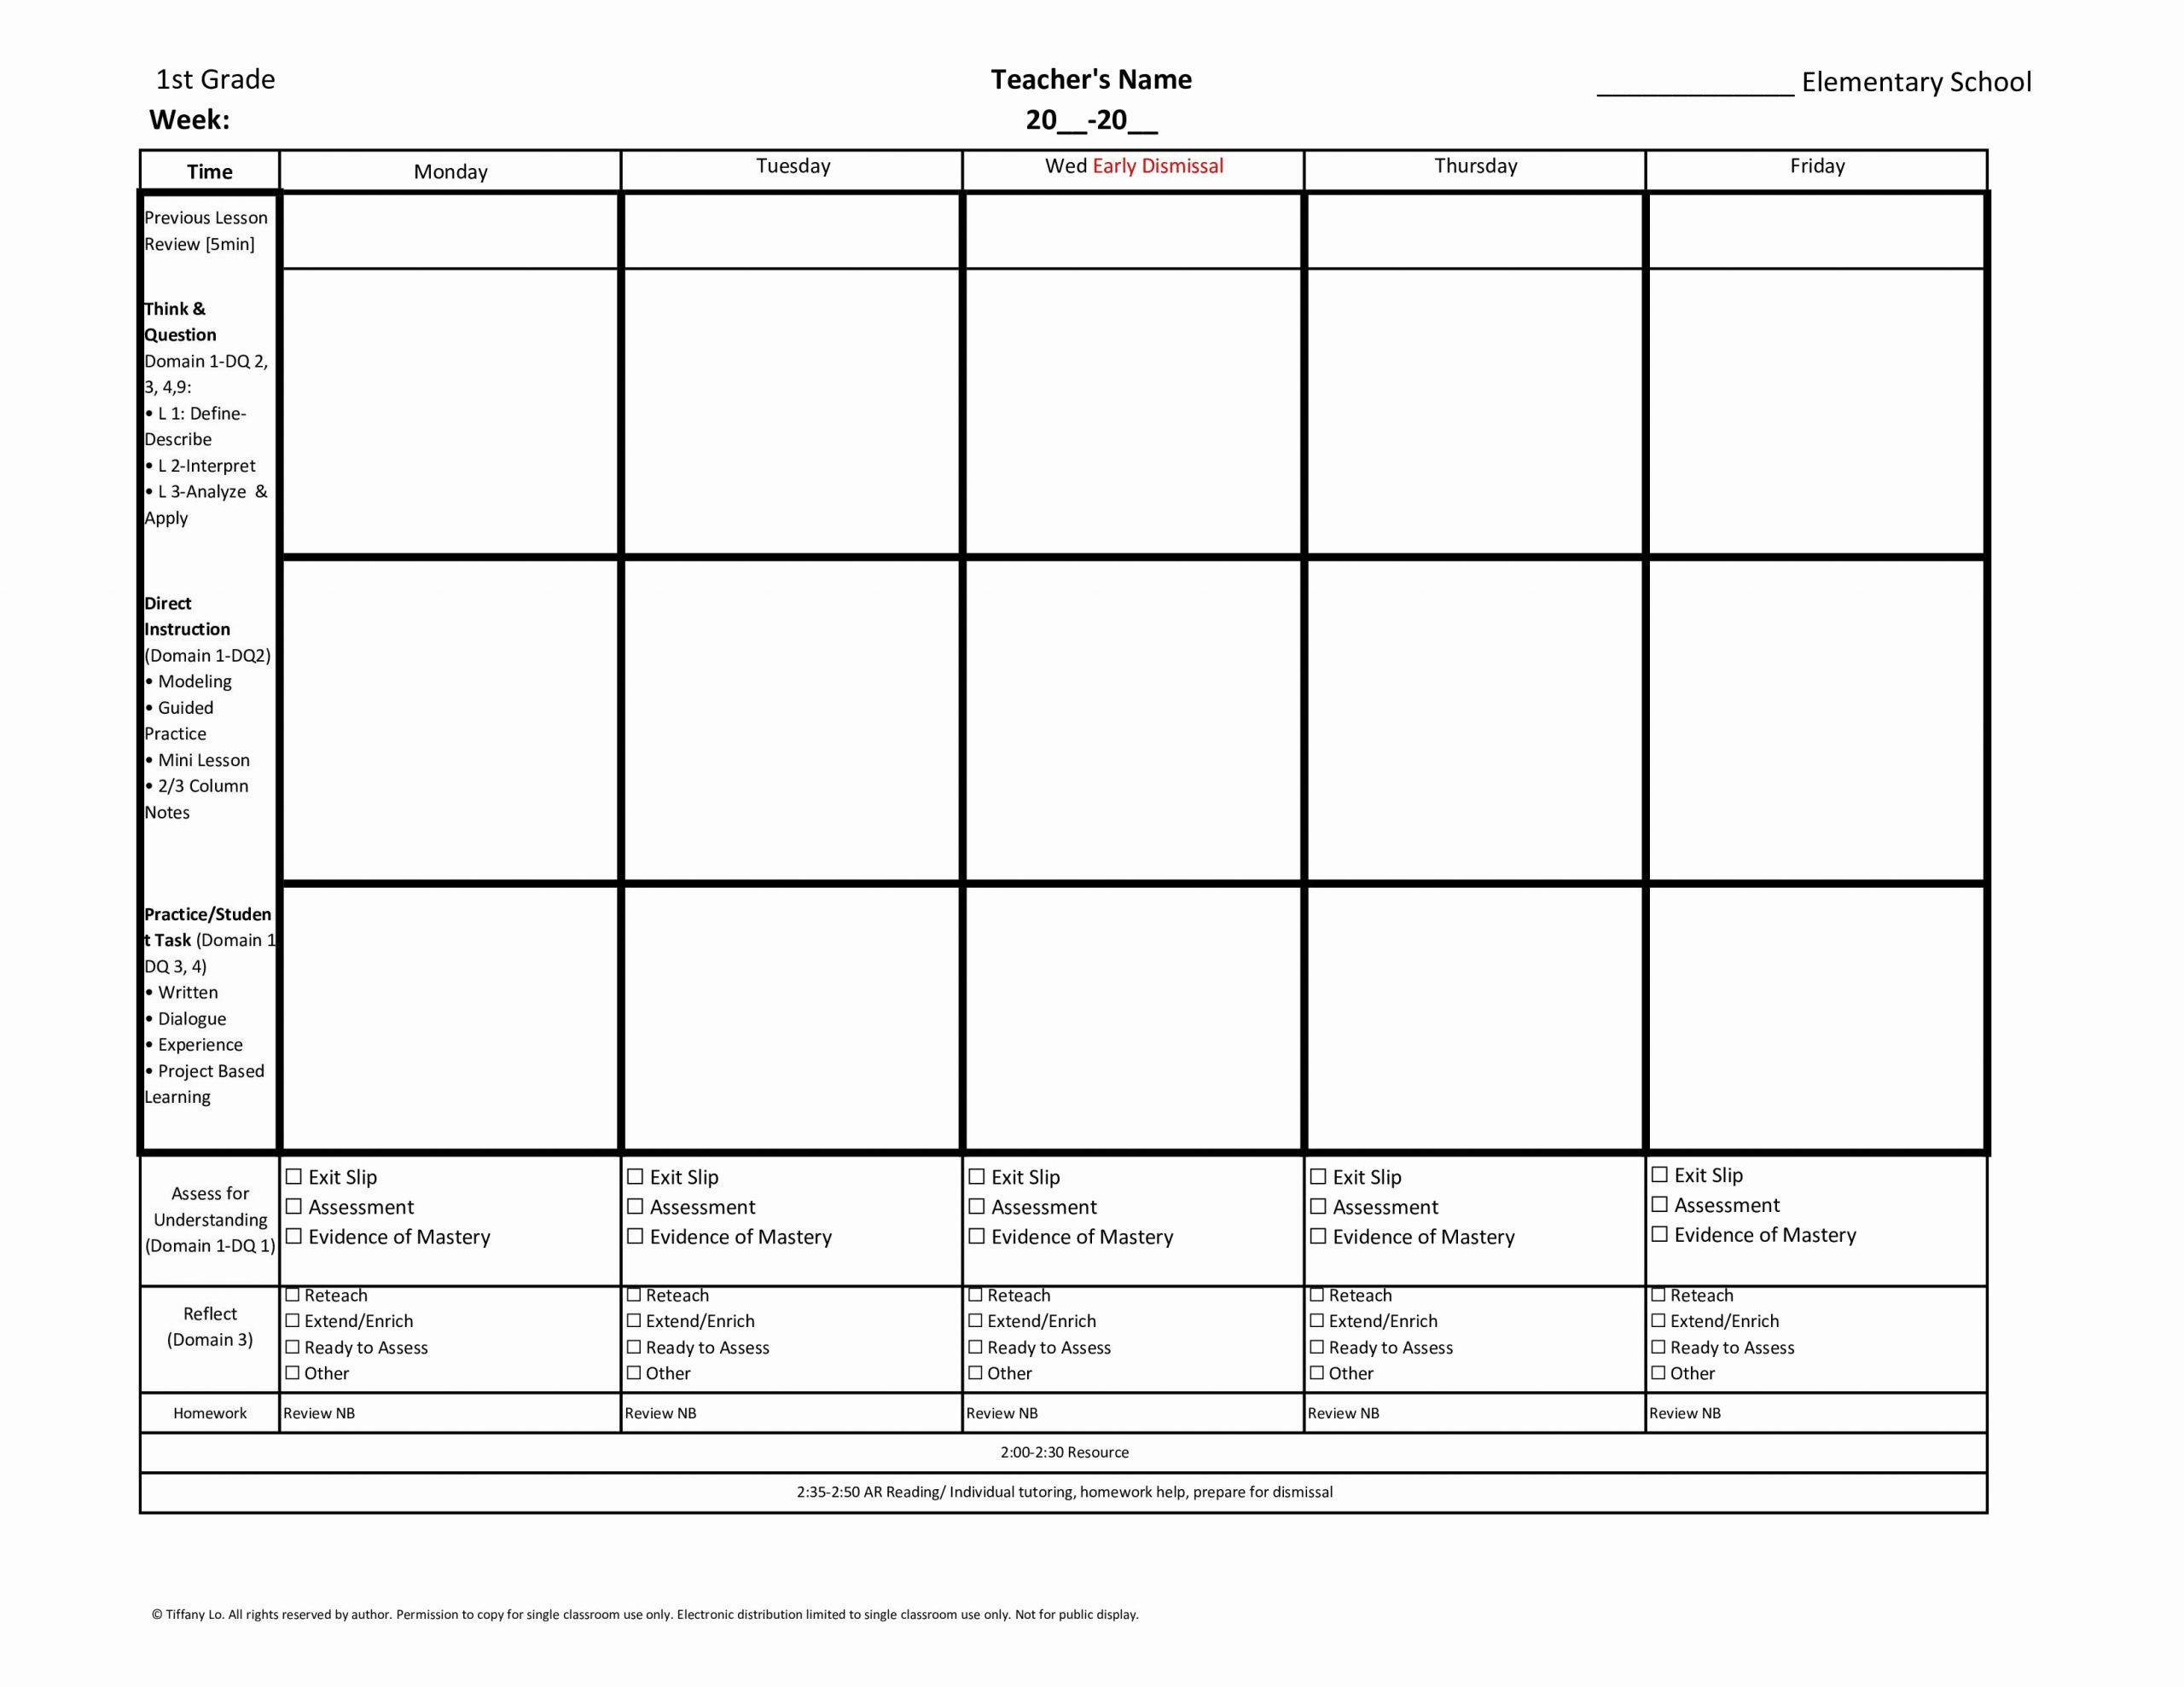 1st first grade weekly lesson plan template w florida standards drop down lists